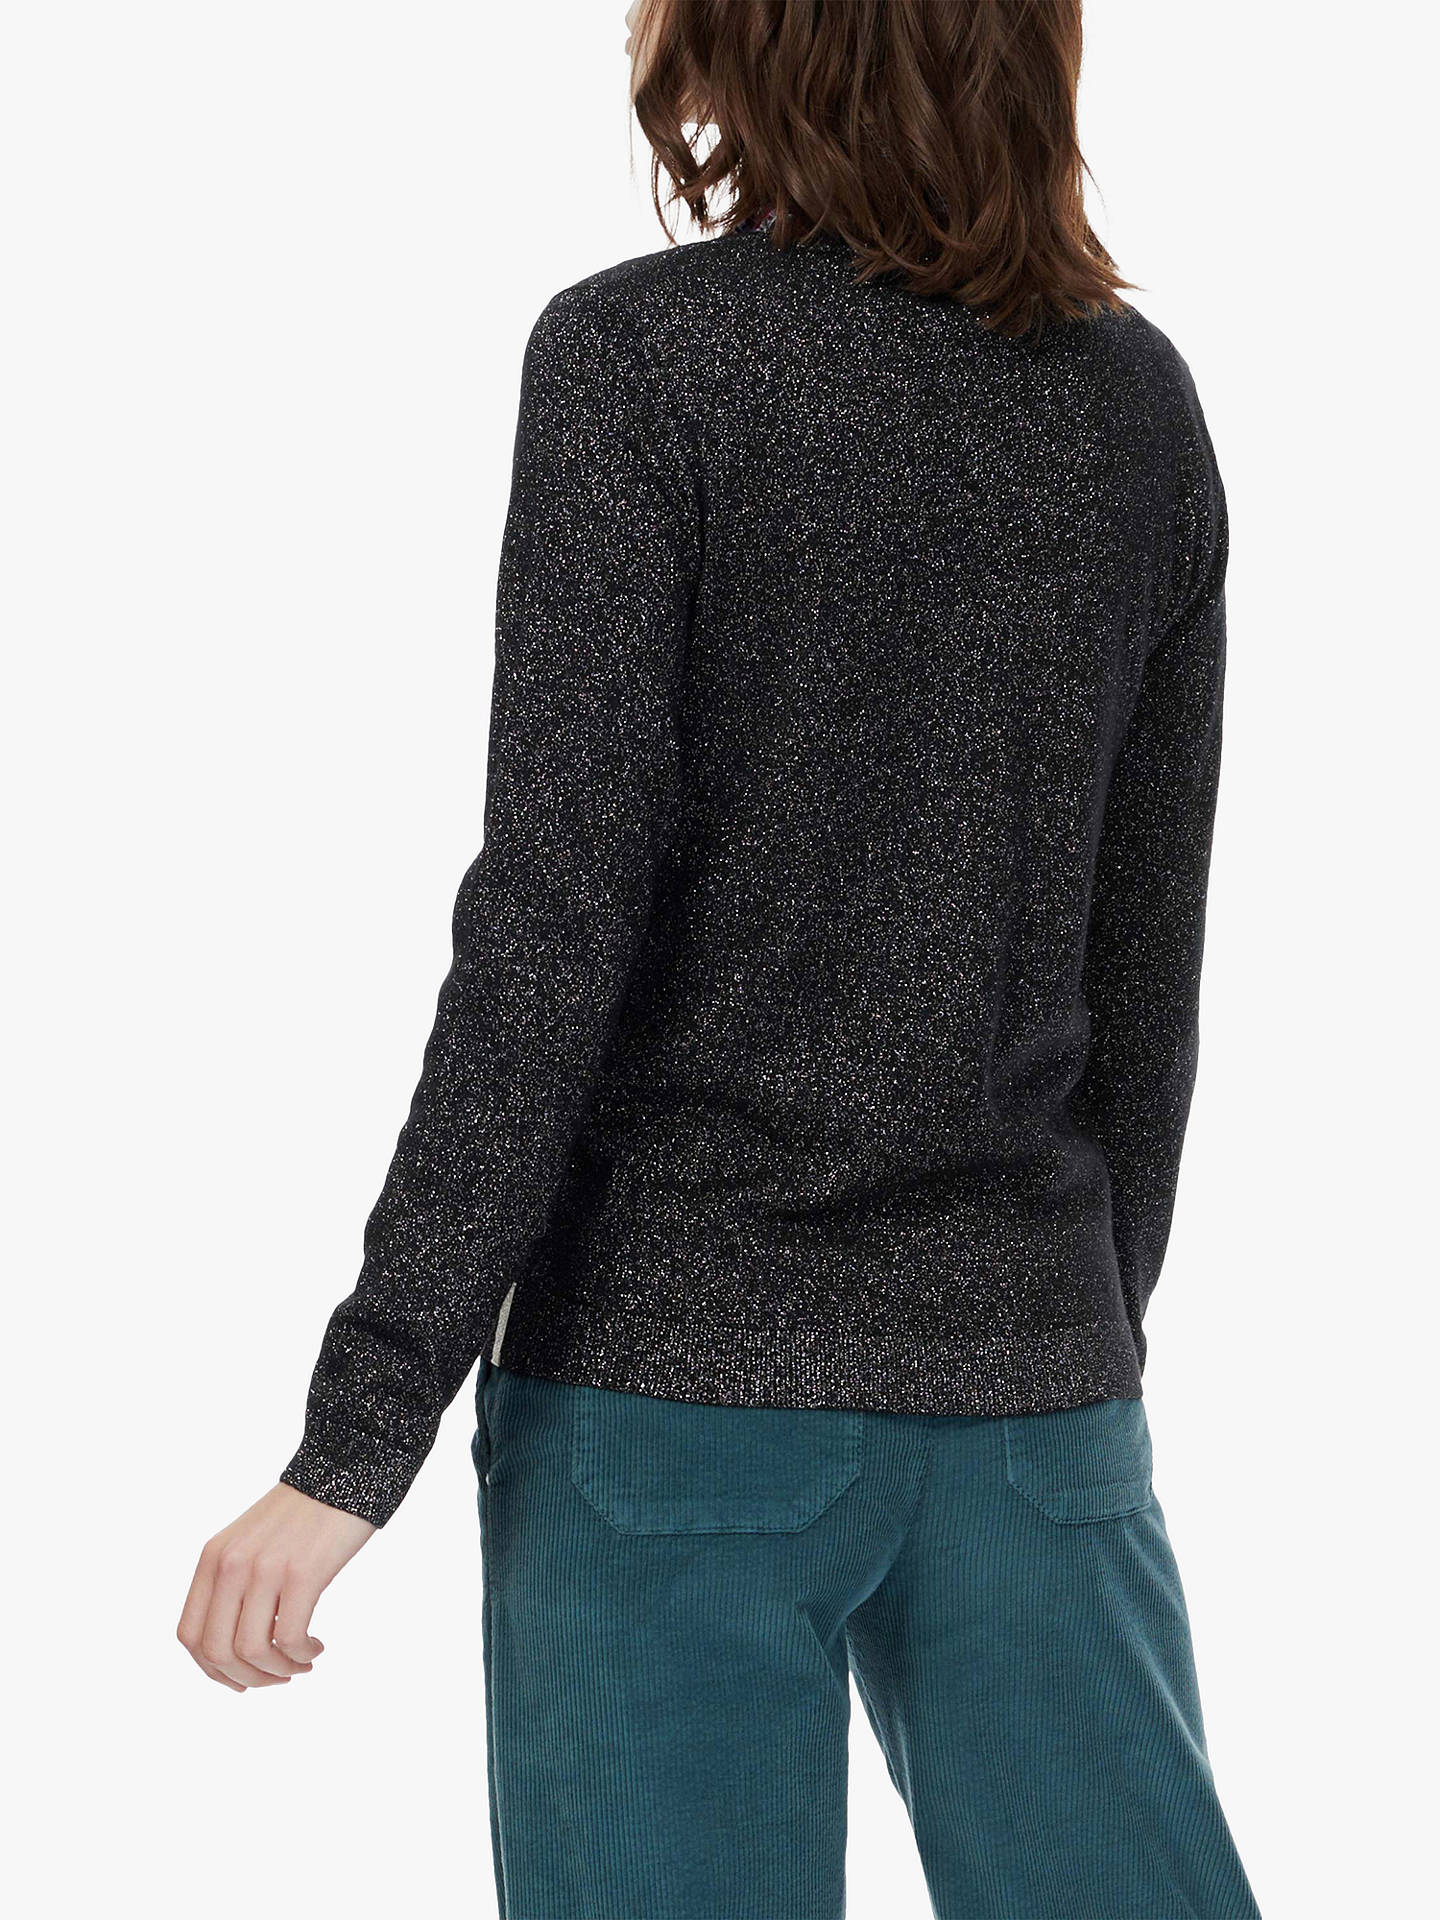 BuyBrora Merino Wool Sparkle Jumper, Black, 8 Online at johnlewis.com